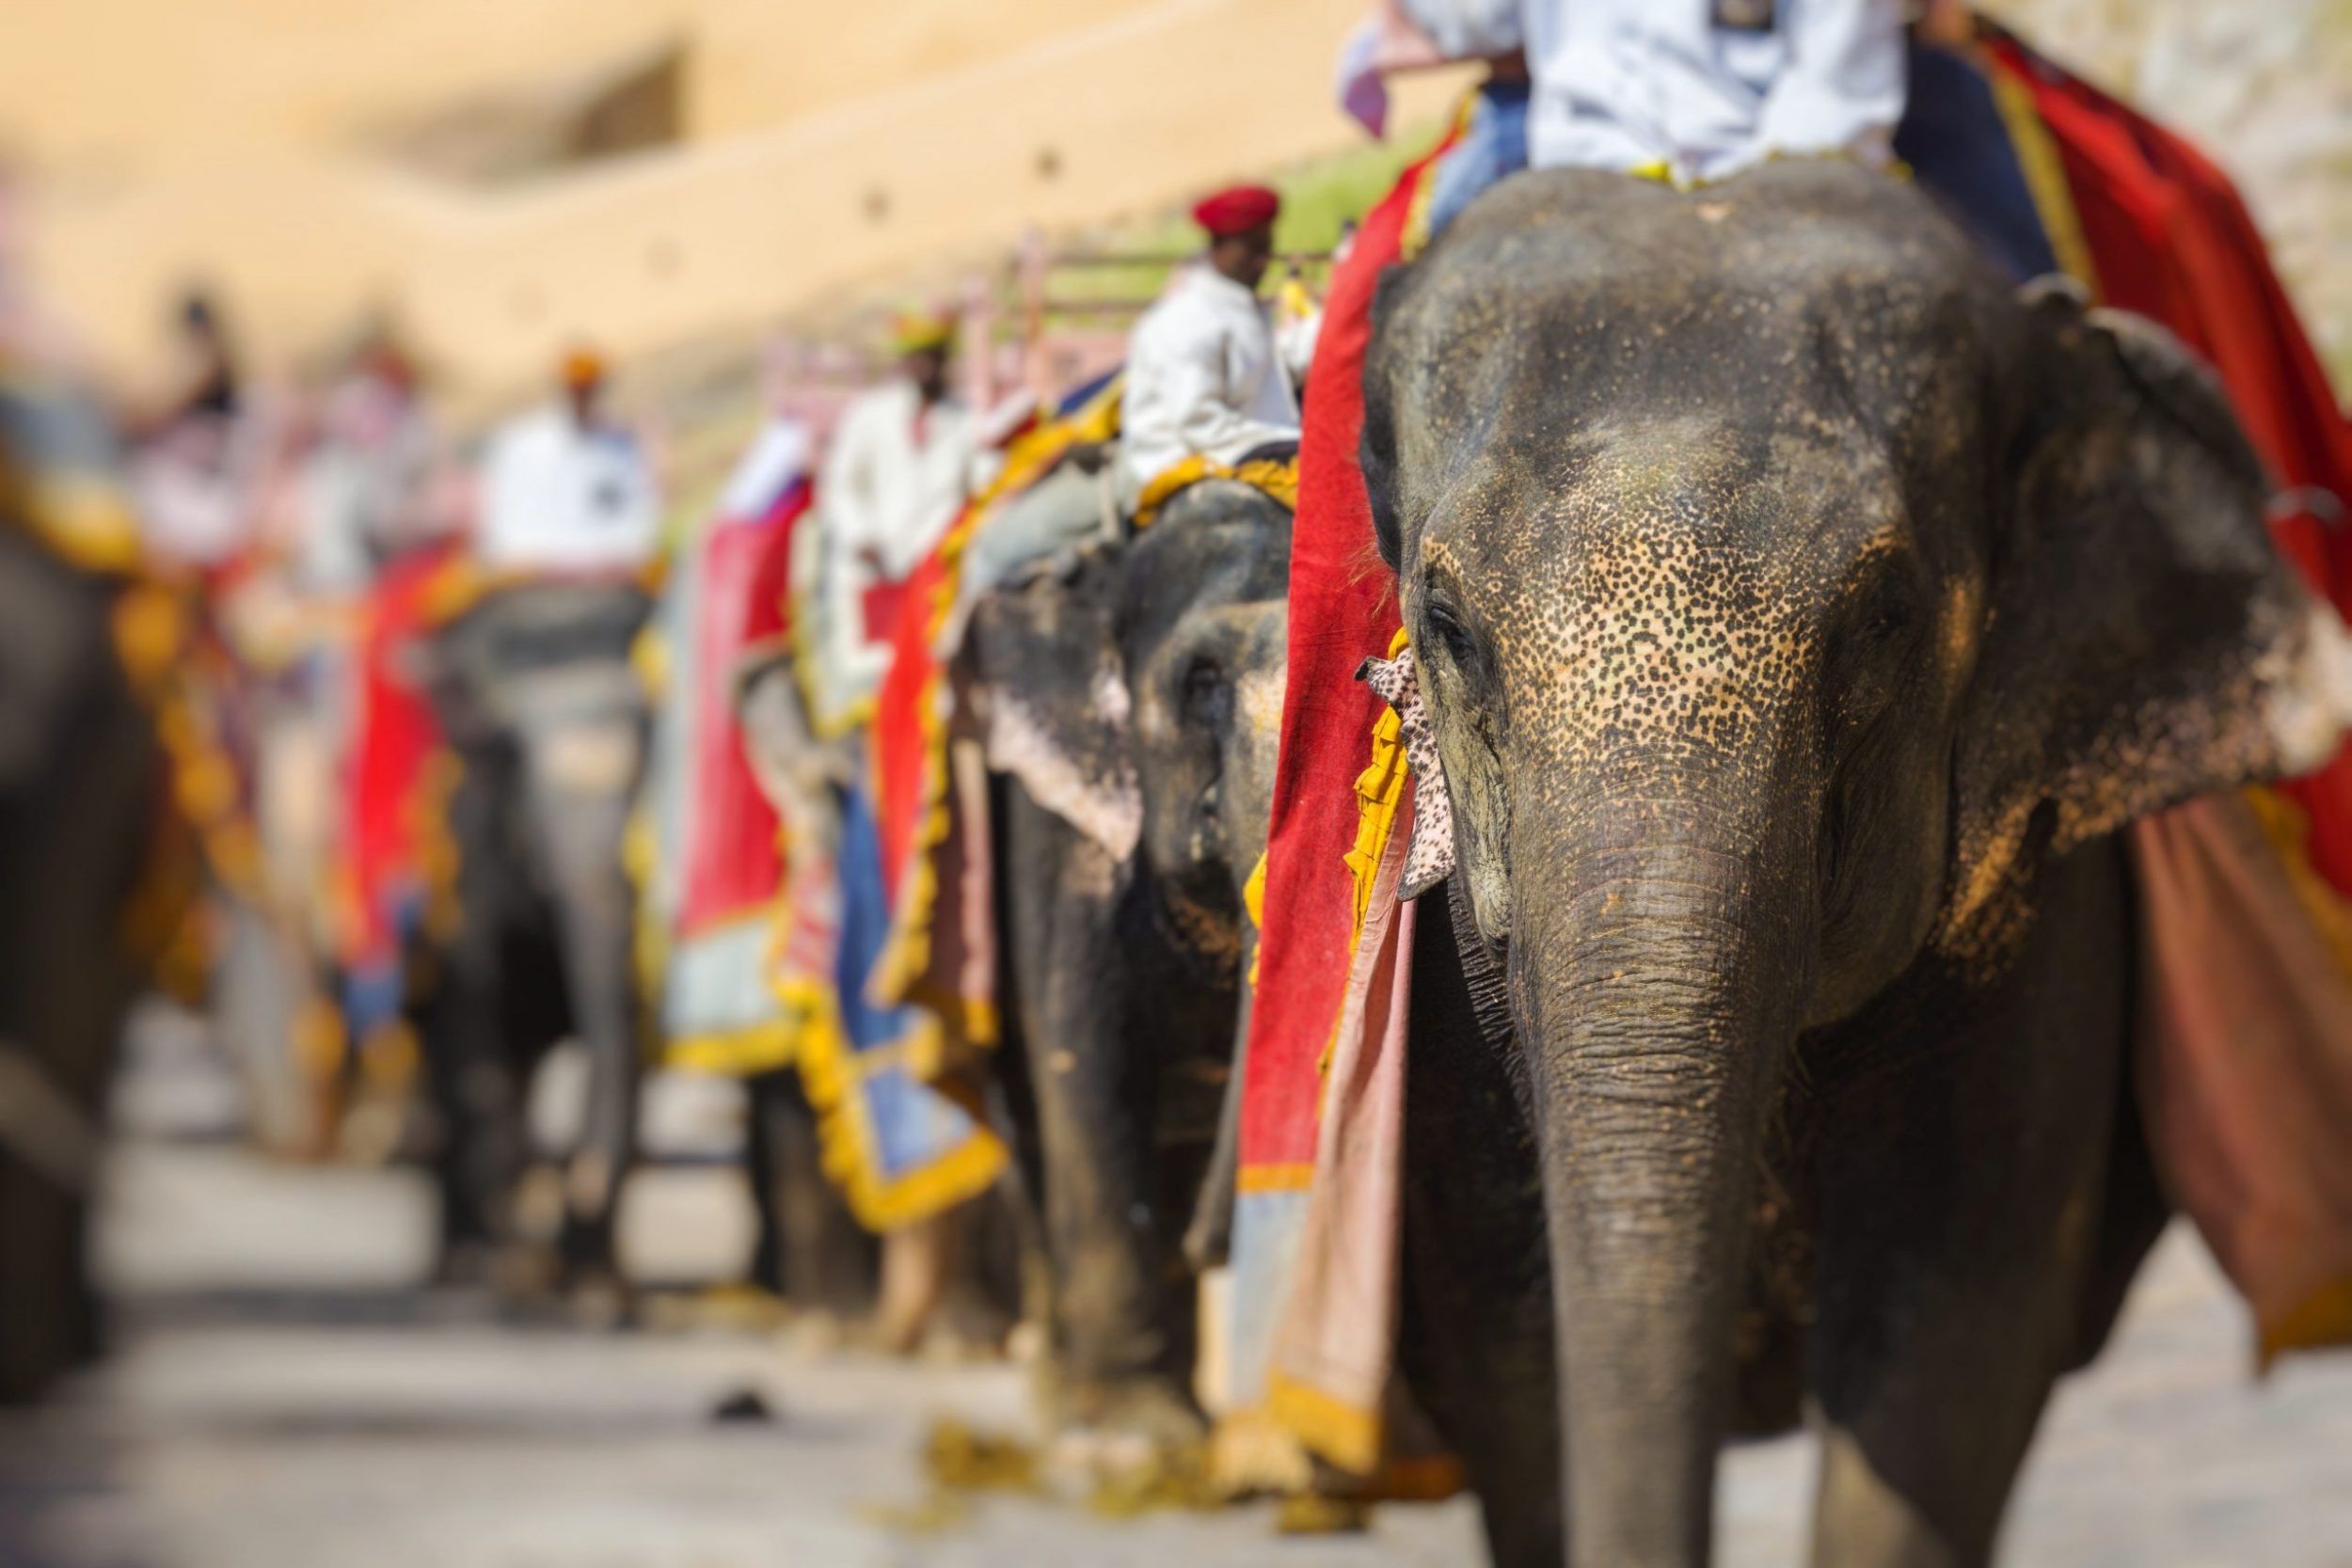 India - Elephants at Amber Fort in Jaipur